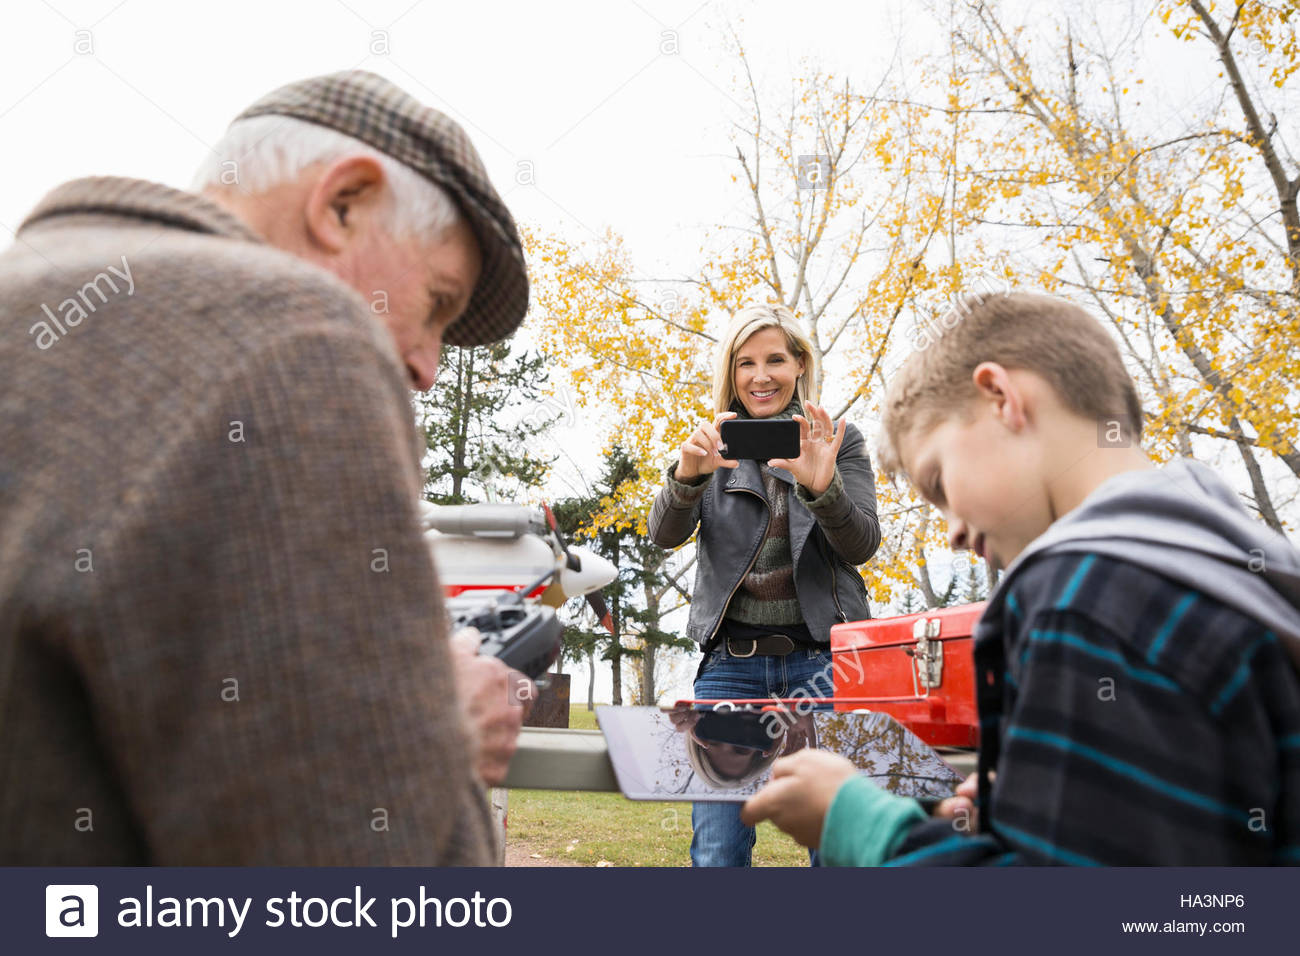 Senior man and grandson with model airplane remote control and digital tablet in park - Stock Image